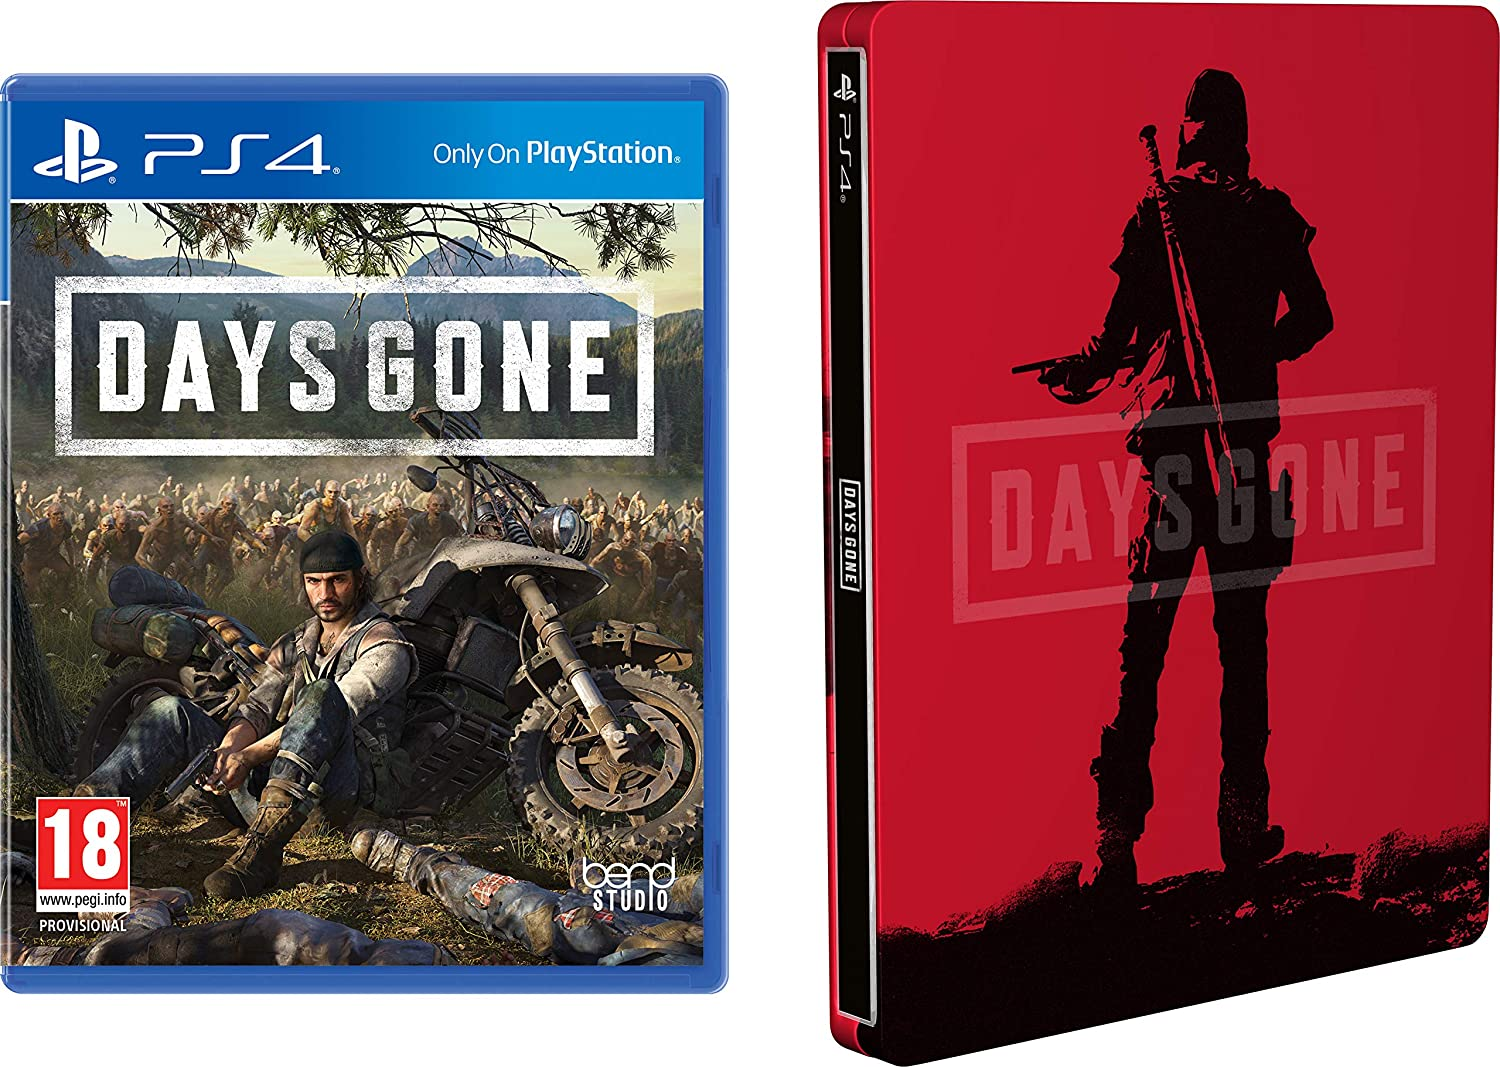 [2019-04-26] Days gone collector-Exclu ps4 91i-qMCxO%2BL._SL1500_